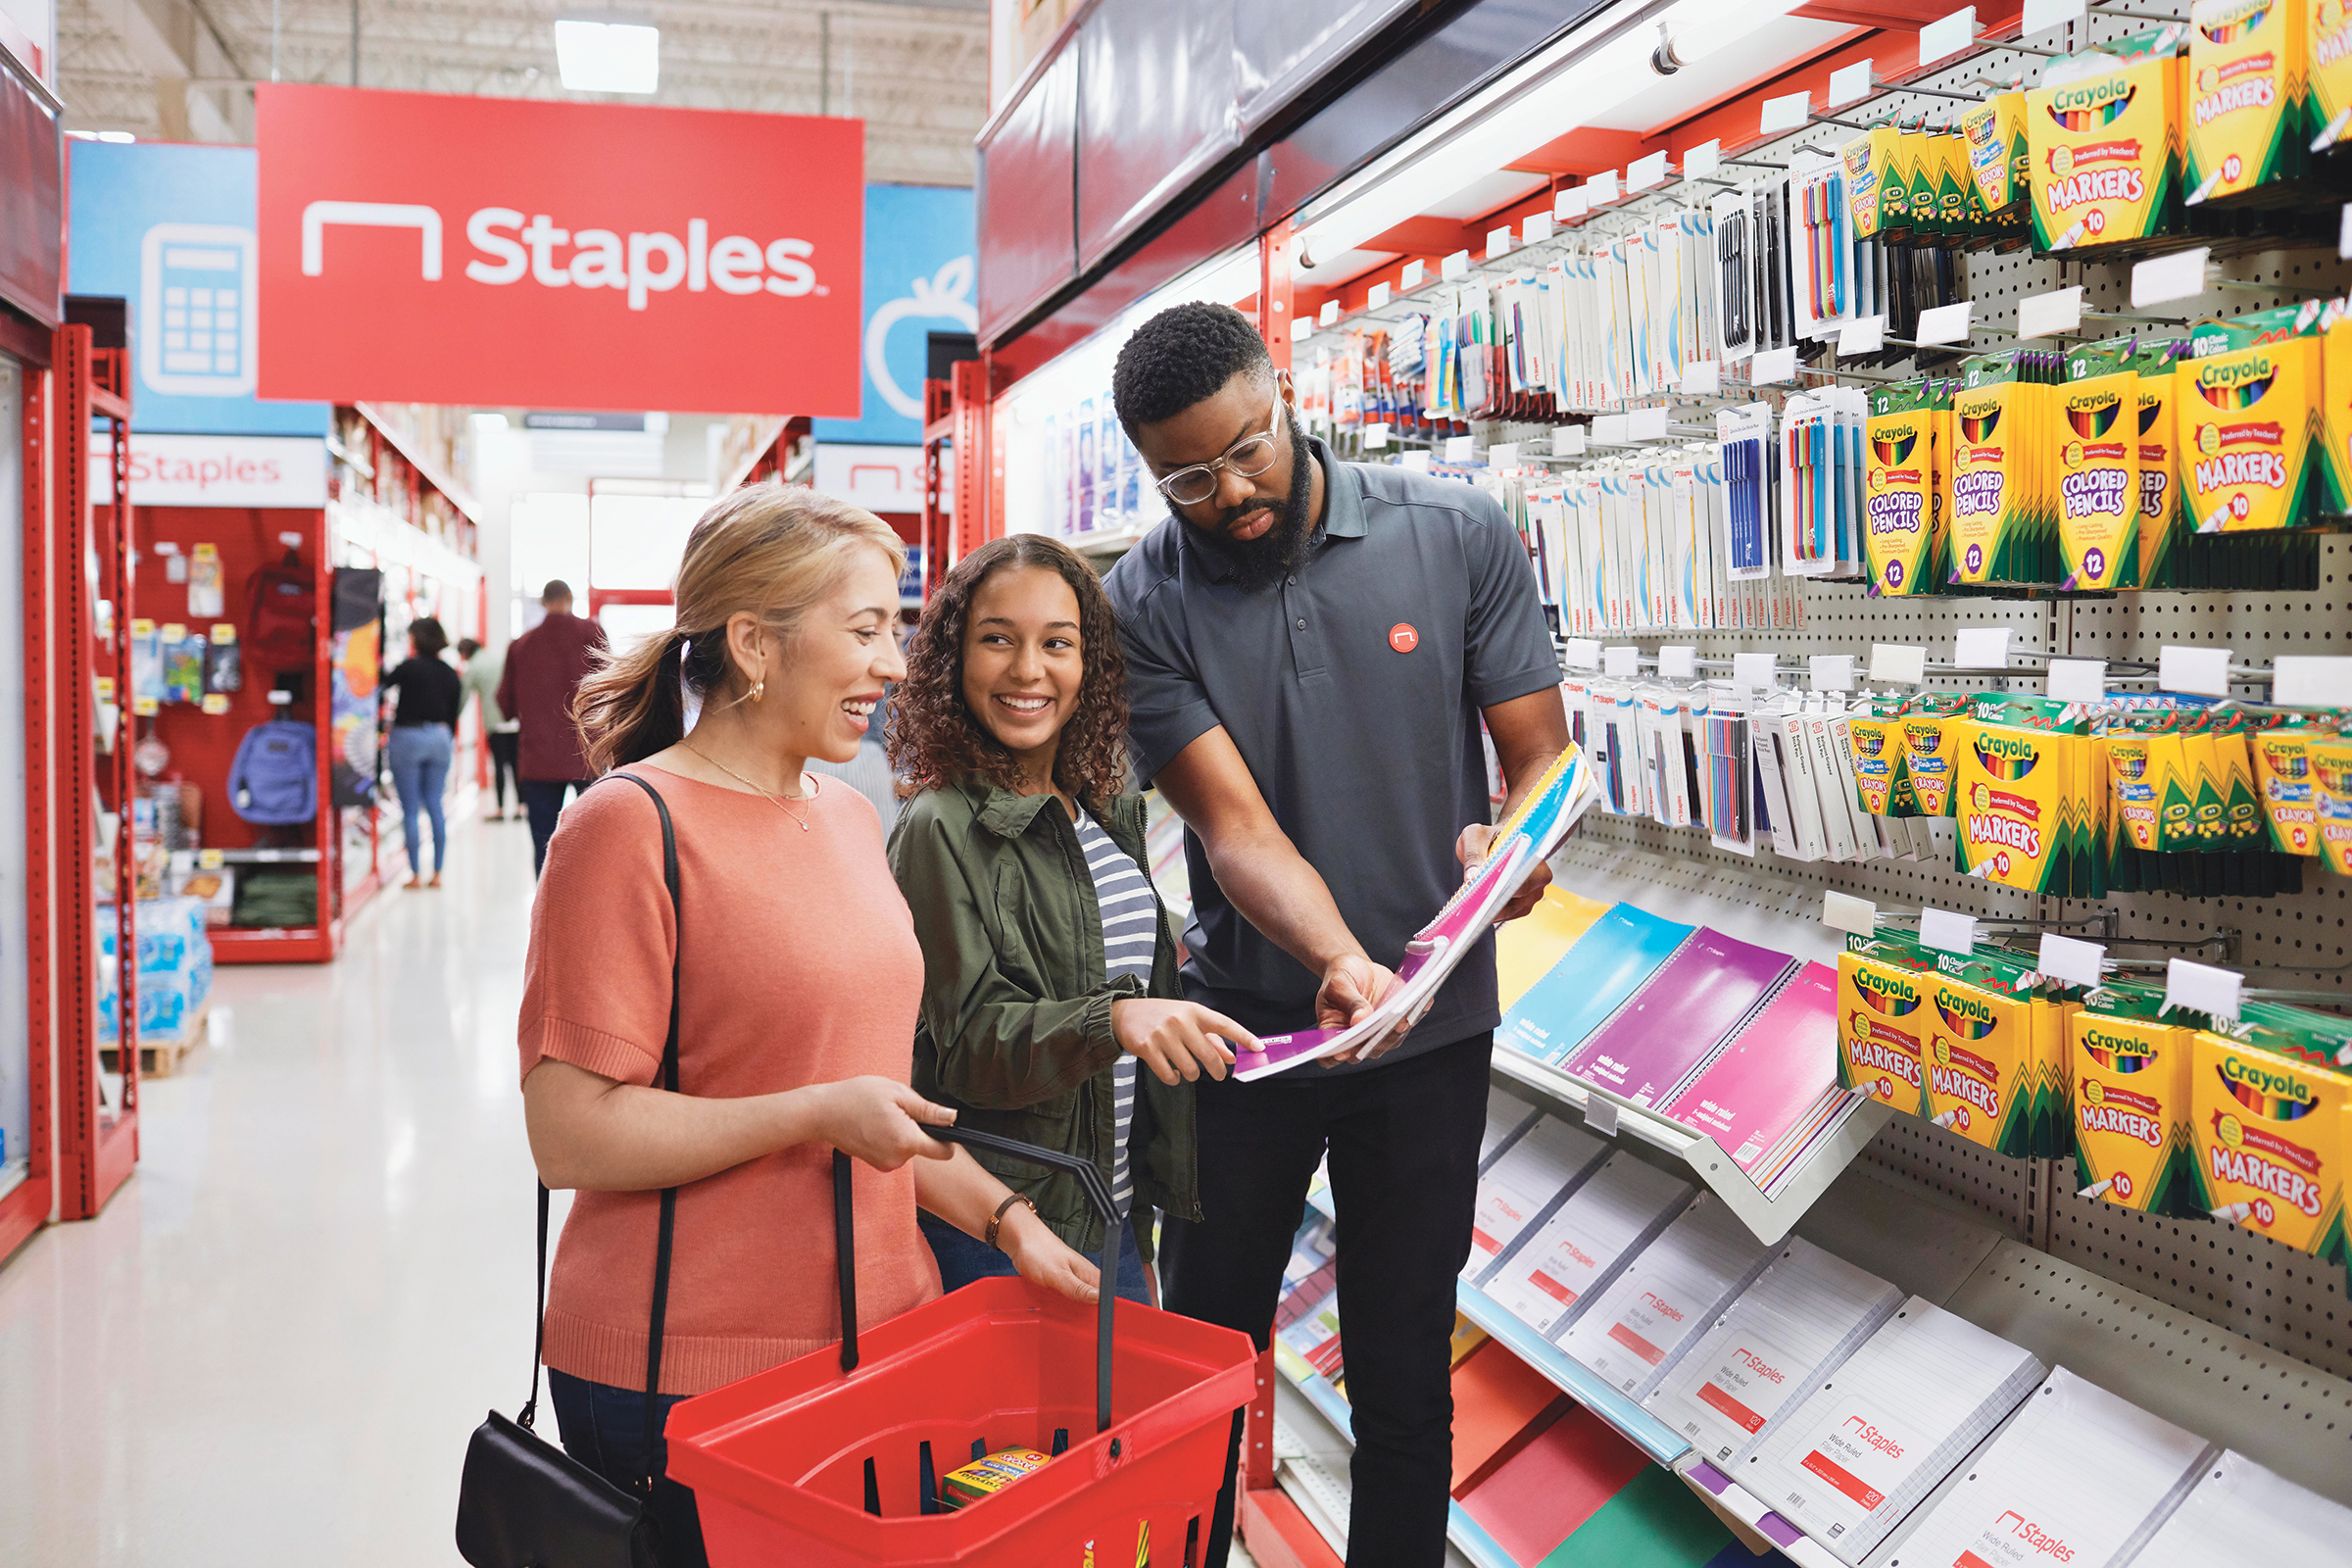 2019 Back to School Trends With Staples pic 1.jpg